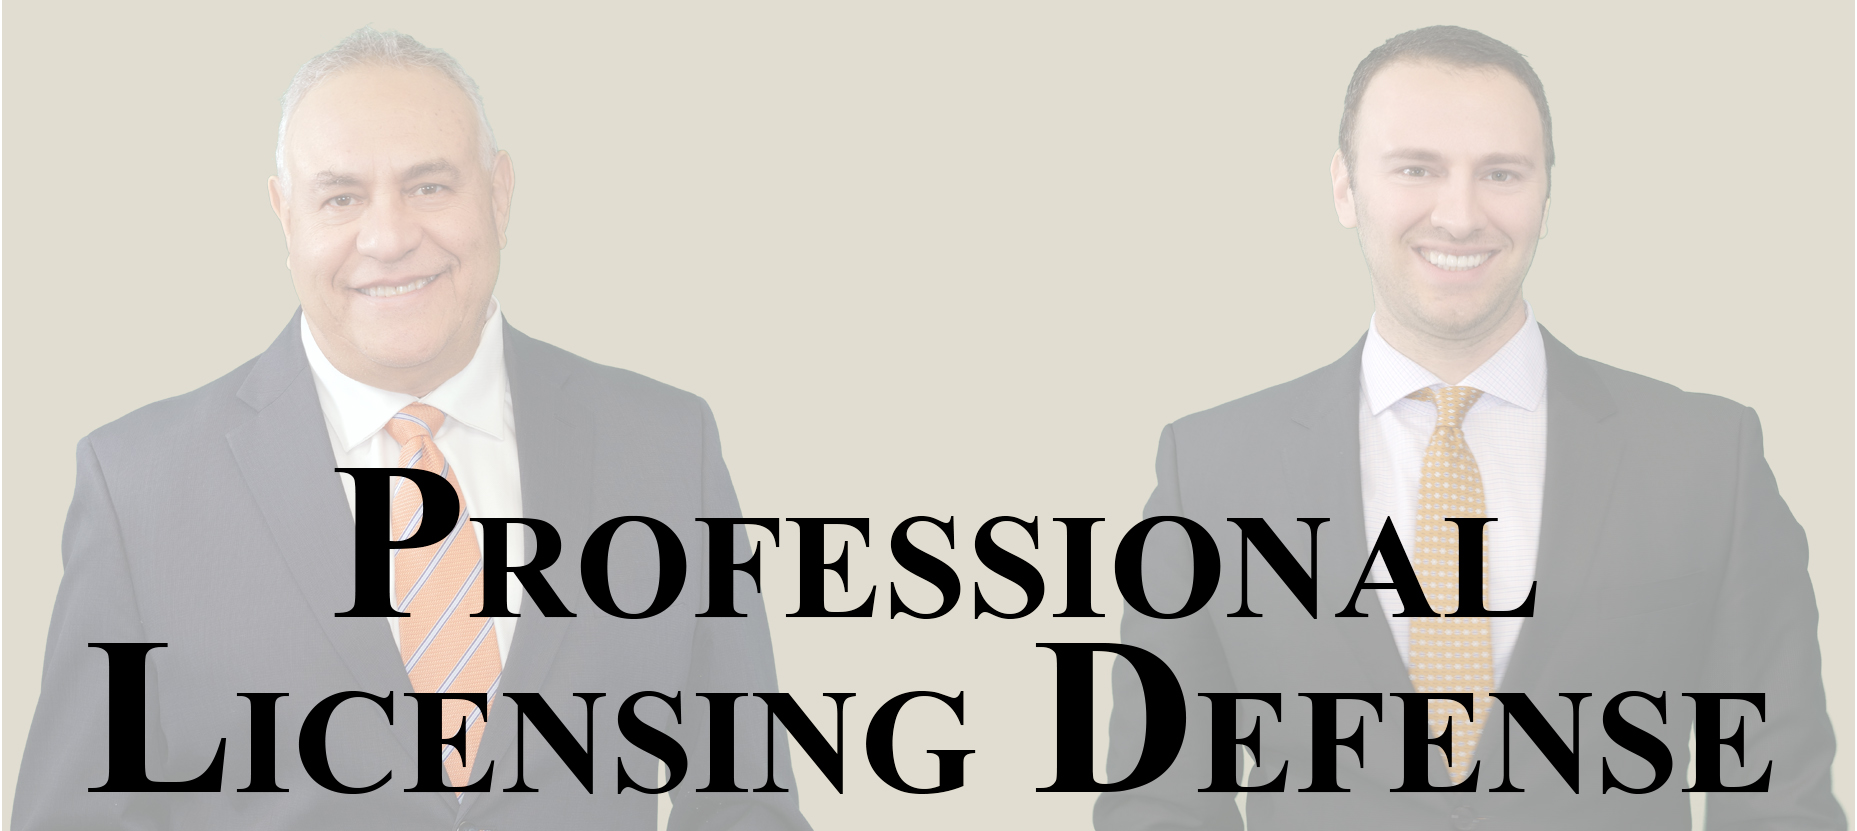 Professional Licensing Defense